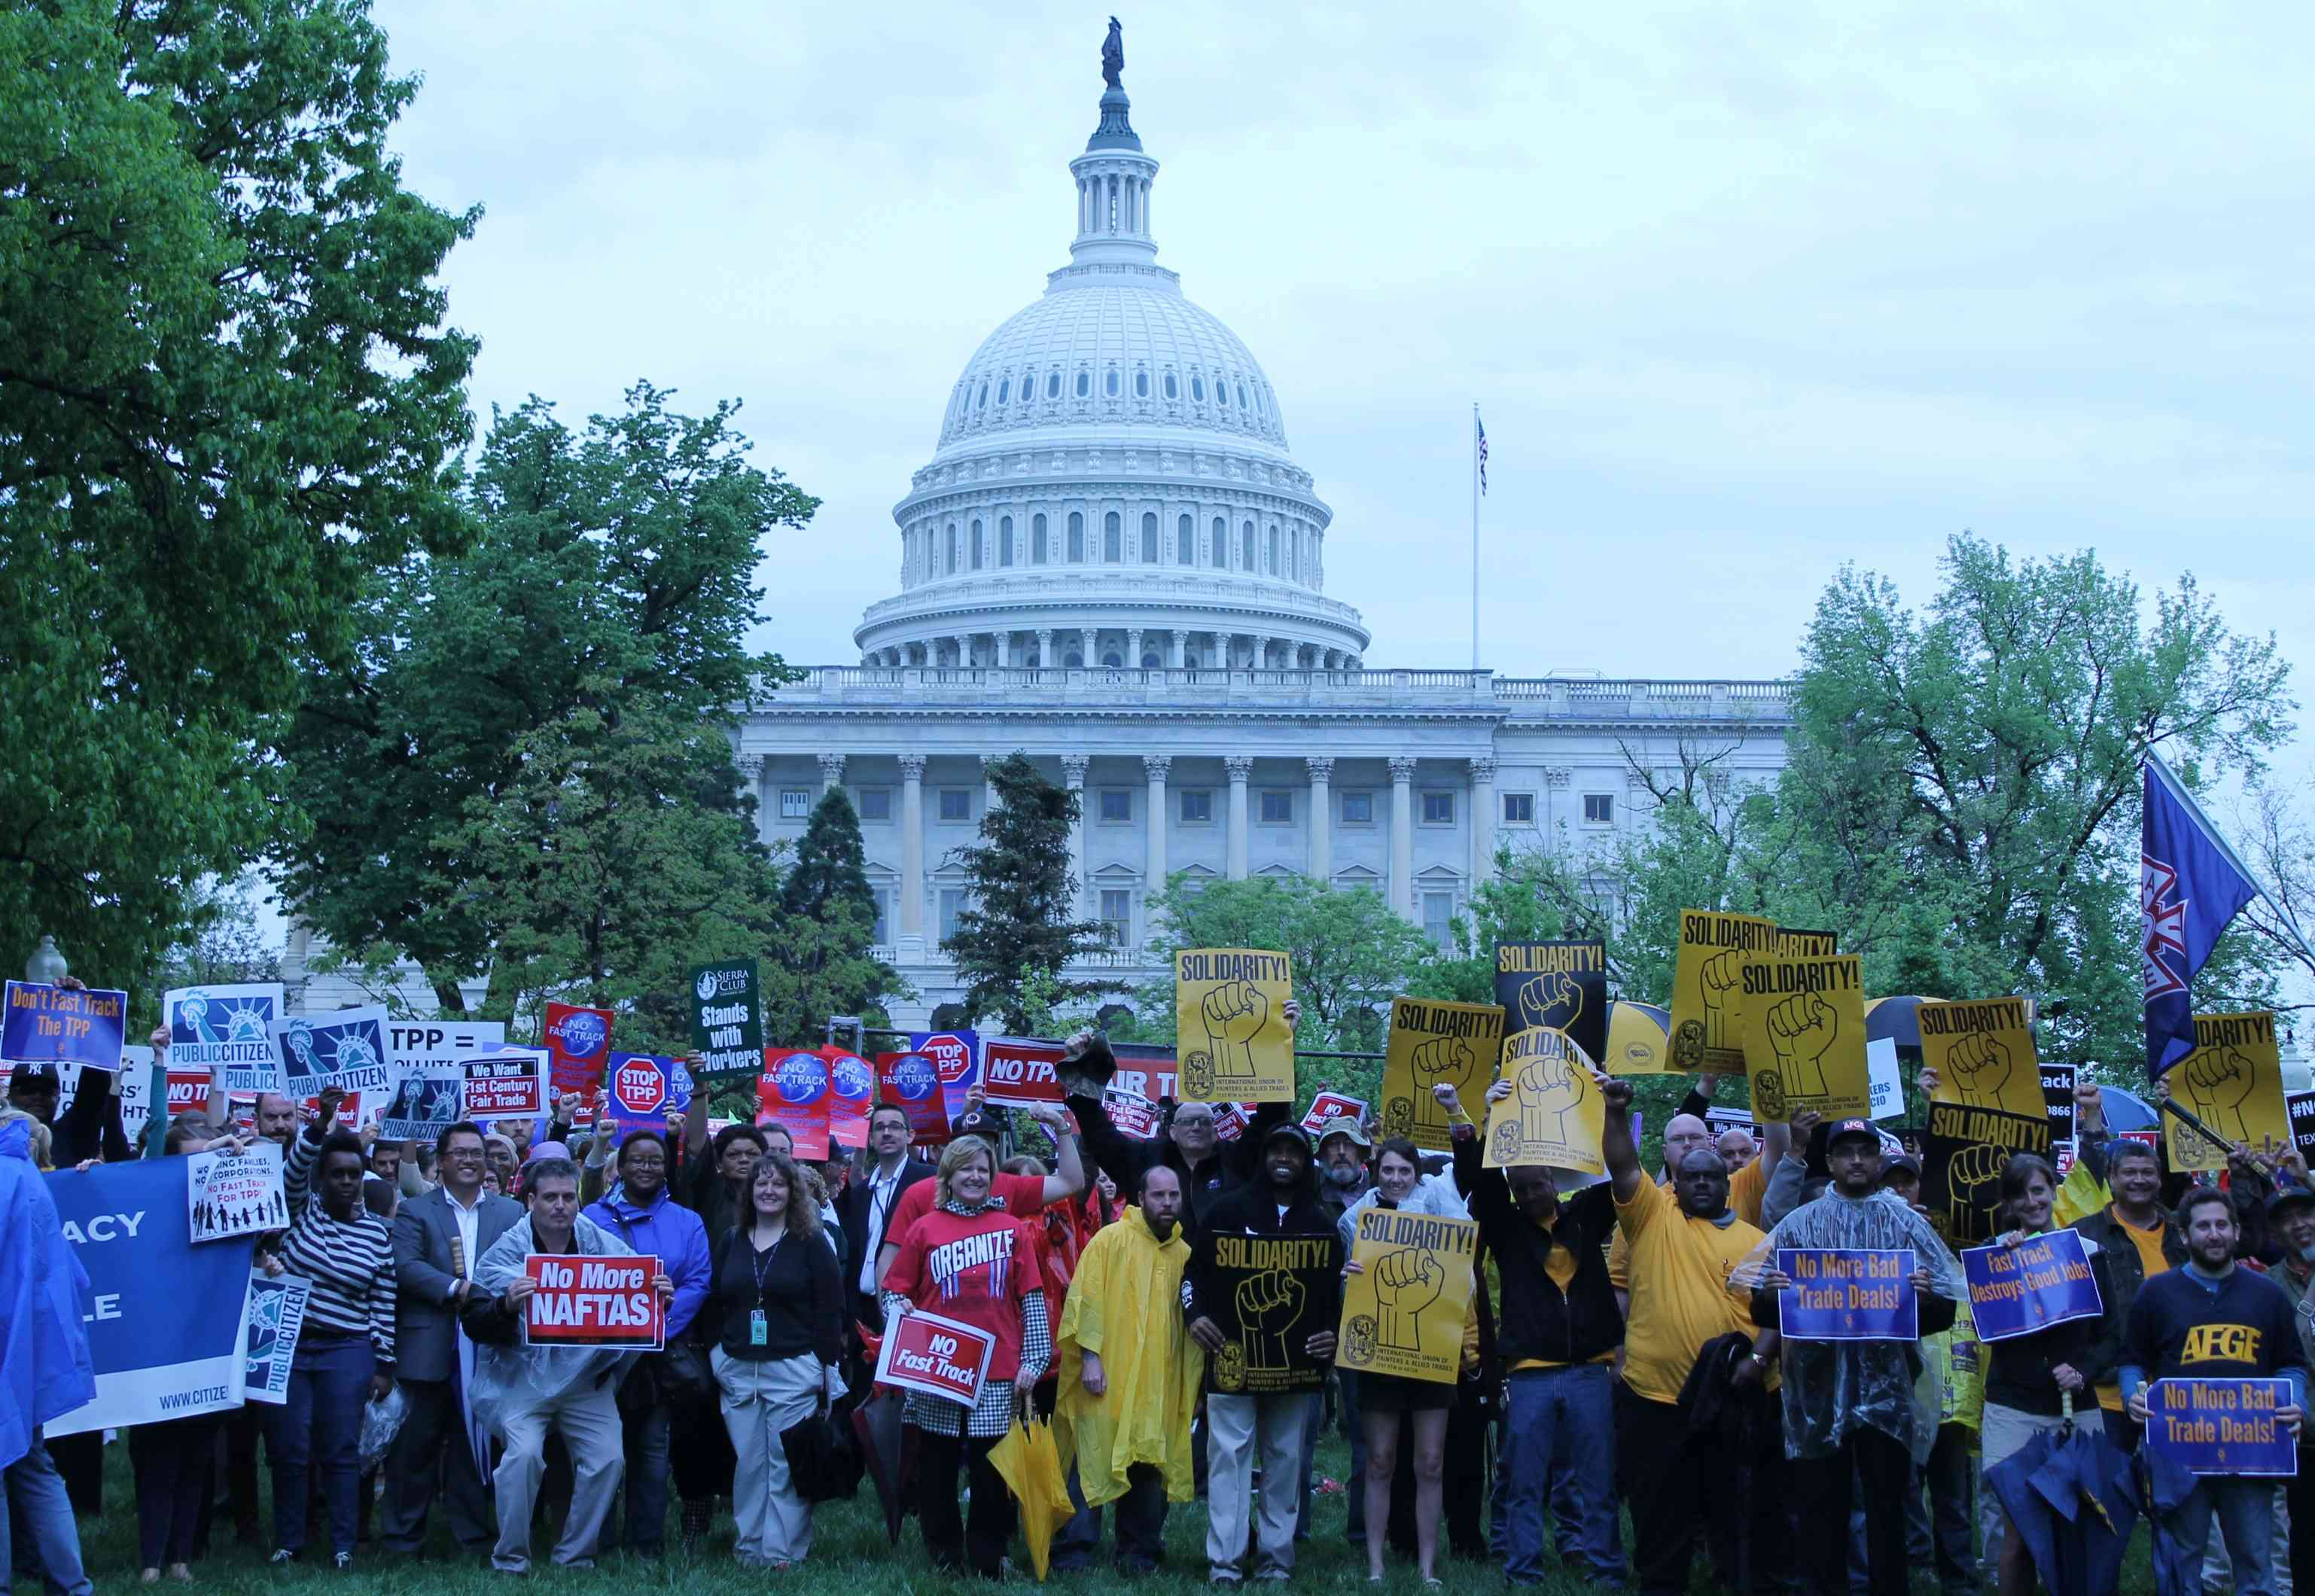 More than a thousand rally against TPP, Fast Track at Capitol